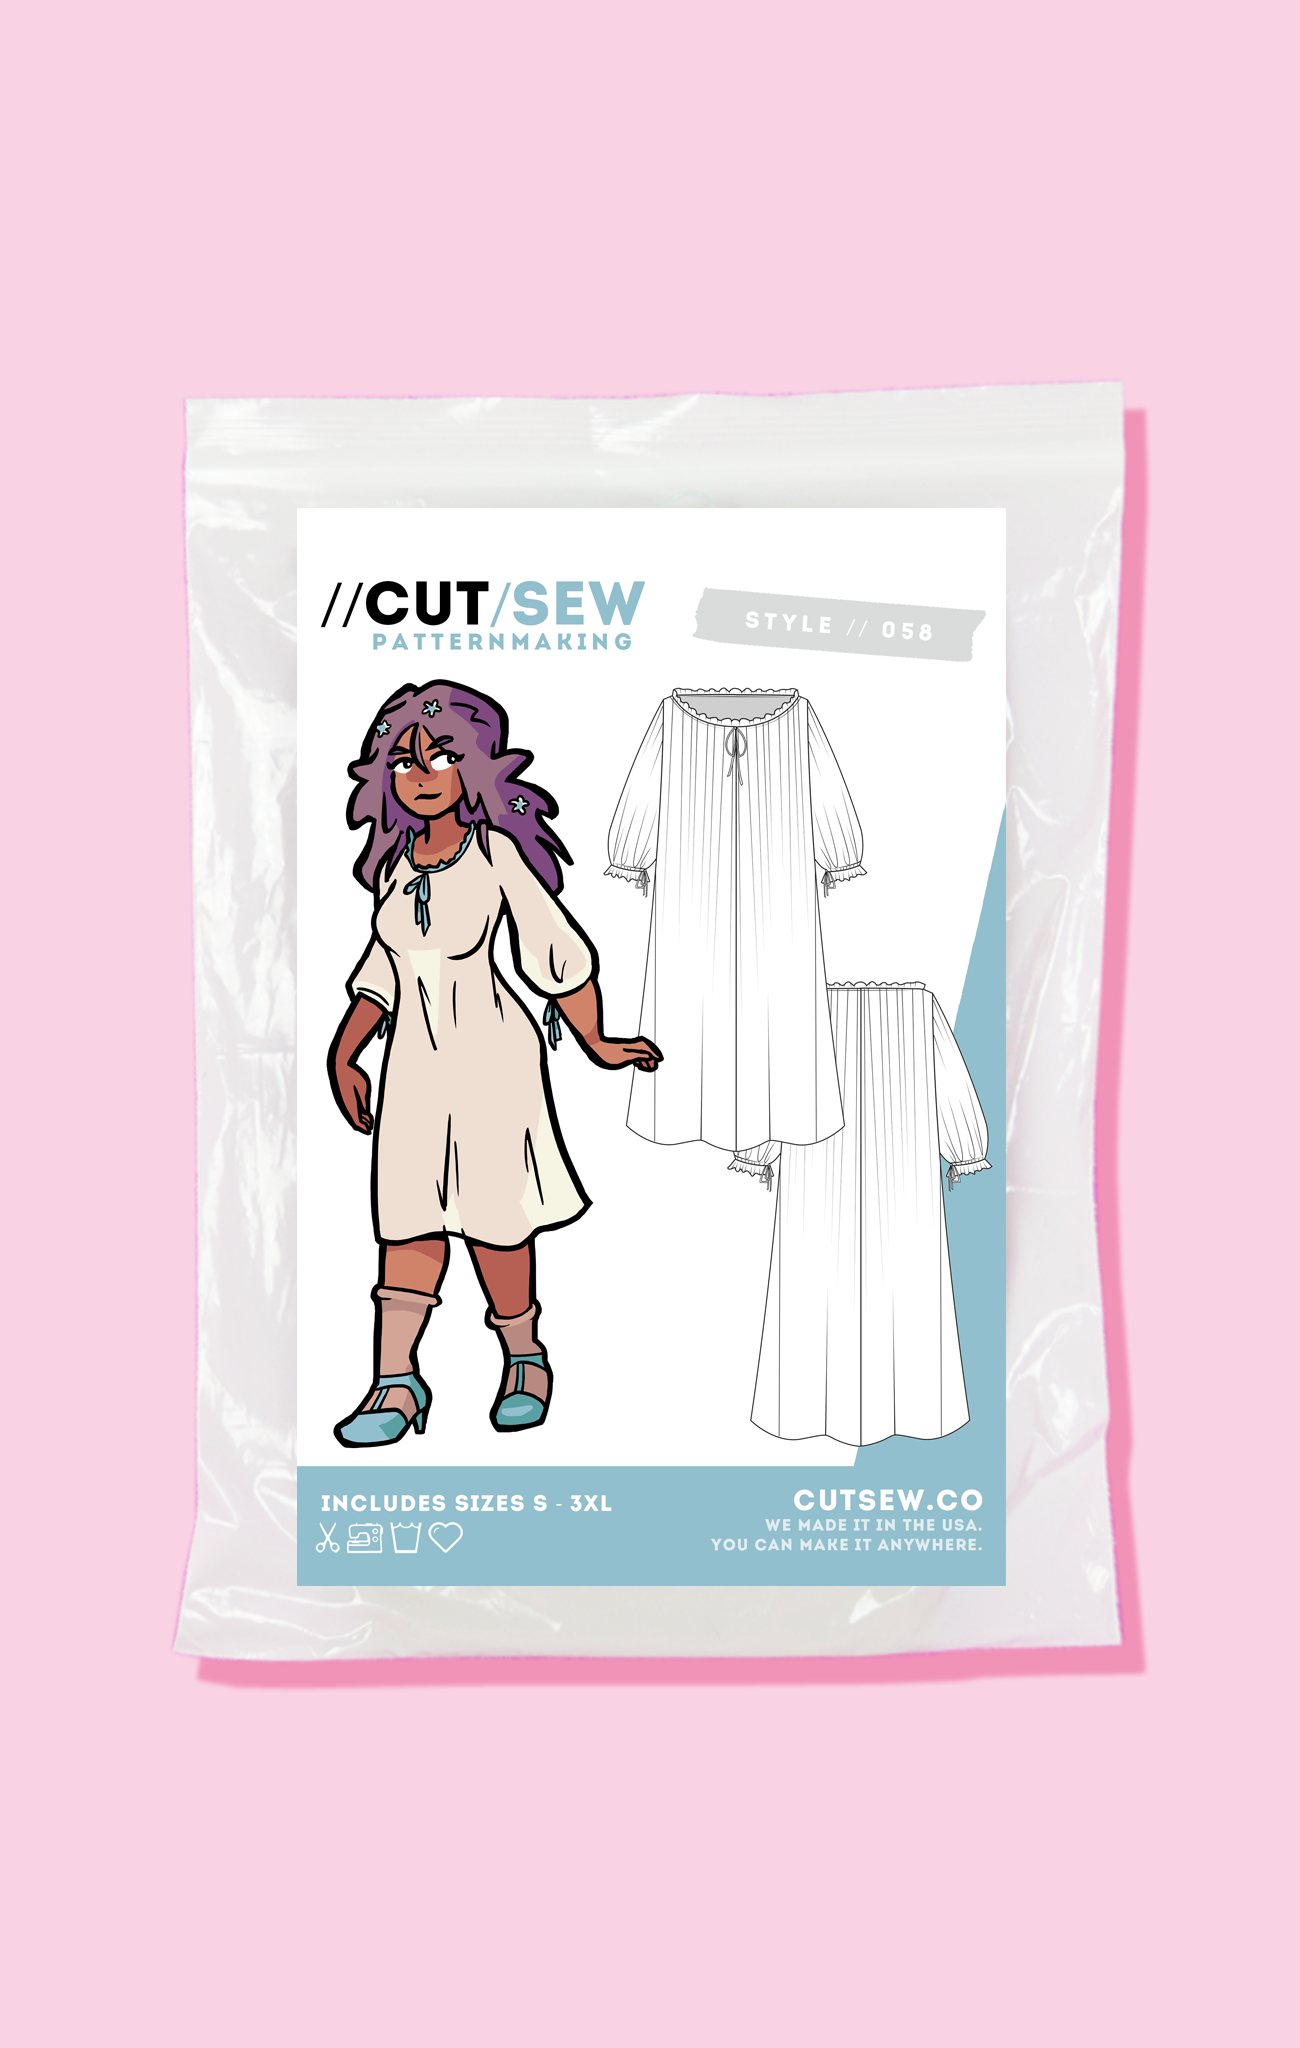 CUT/SEW Chemise Underdress Beginner Friendly Sewing Pattern